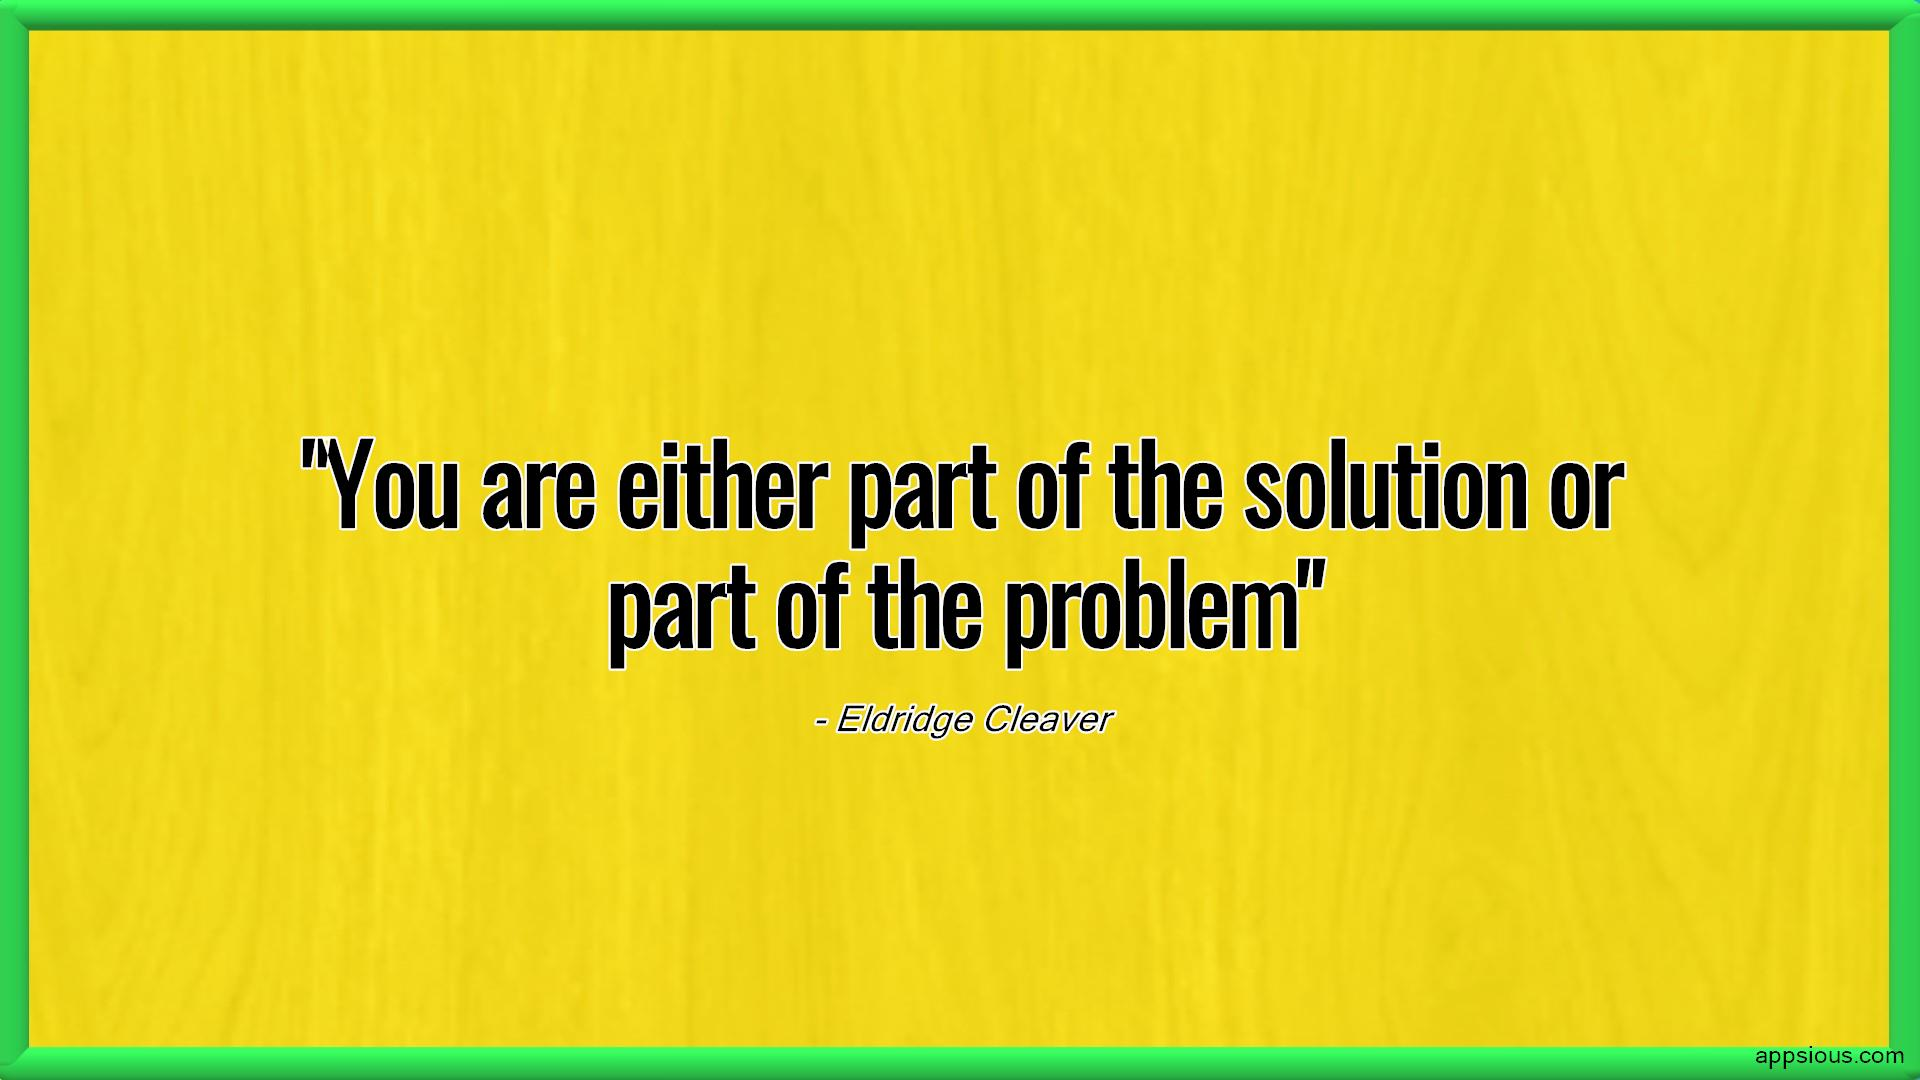 You are either part of the solution or part of the problem